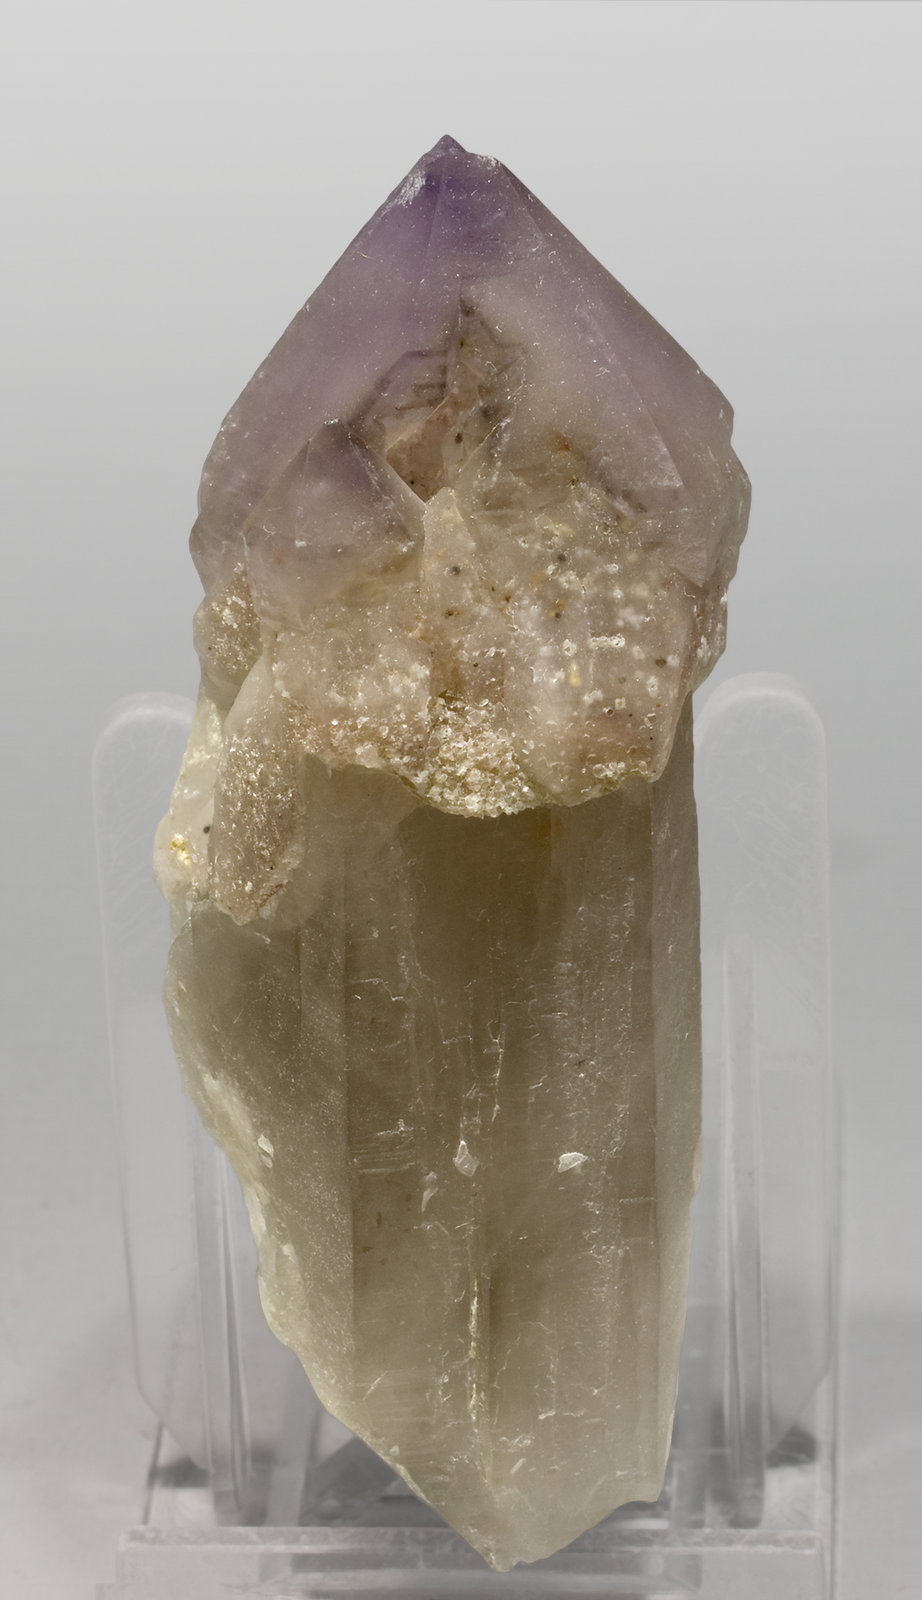 specimens/s_imagesS6/Quartz-NH9S6.jpg